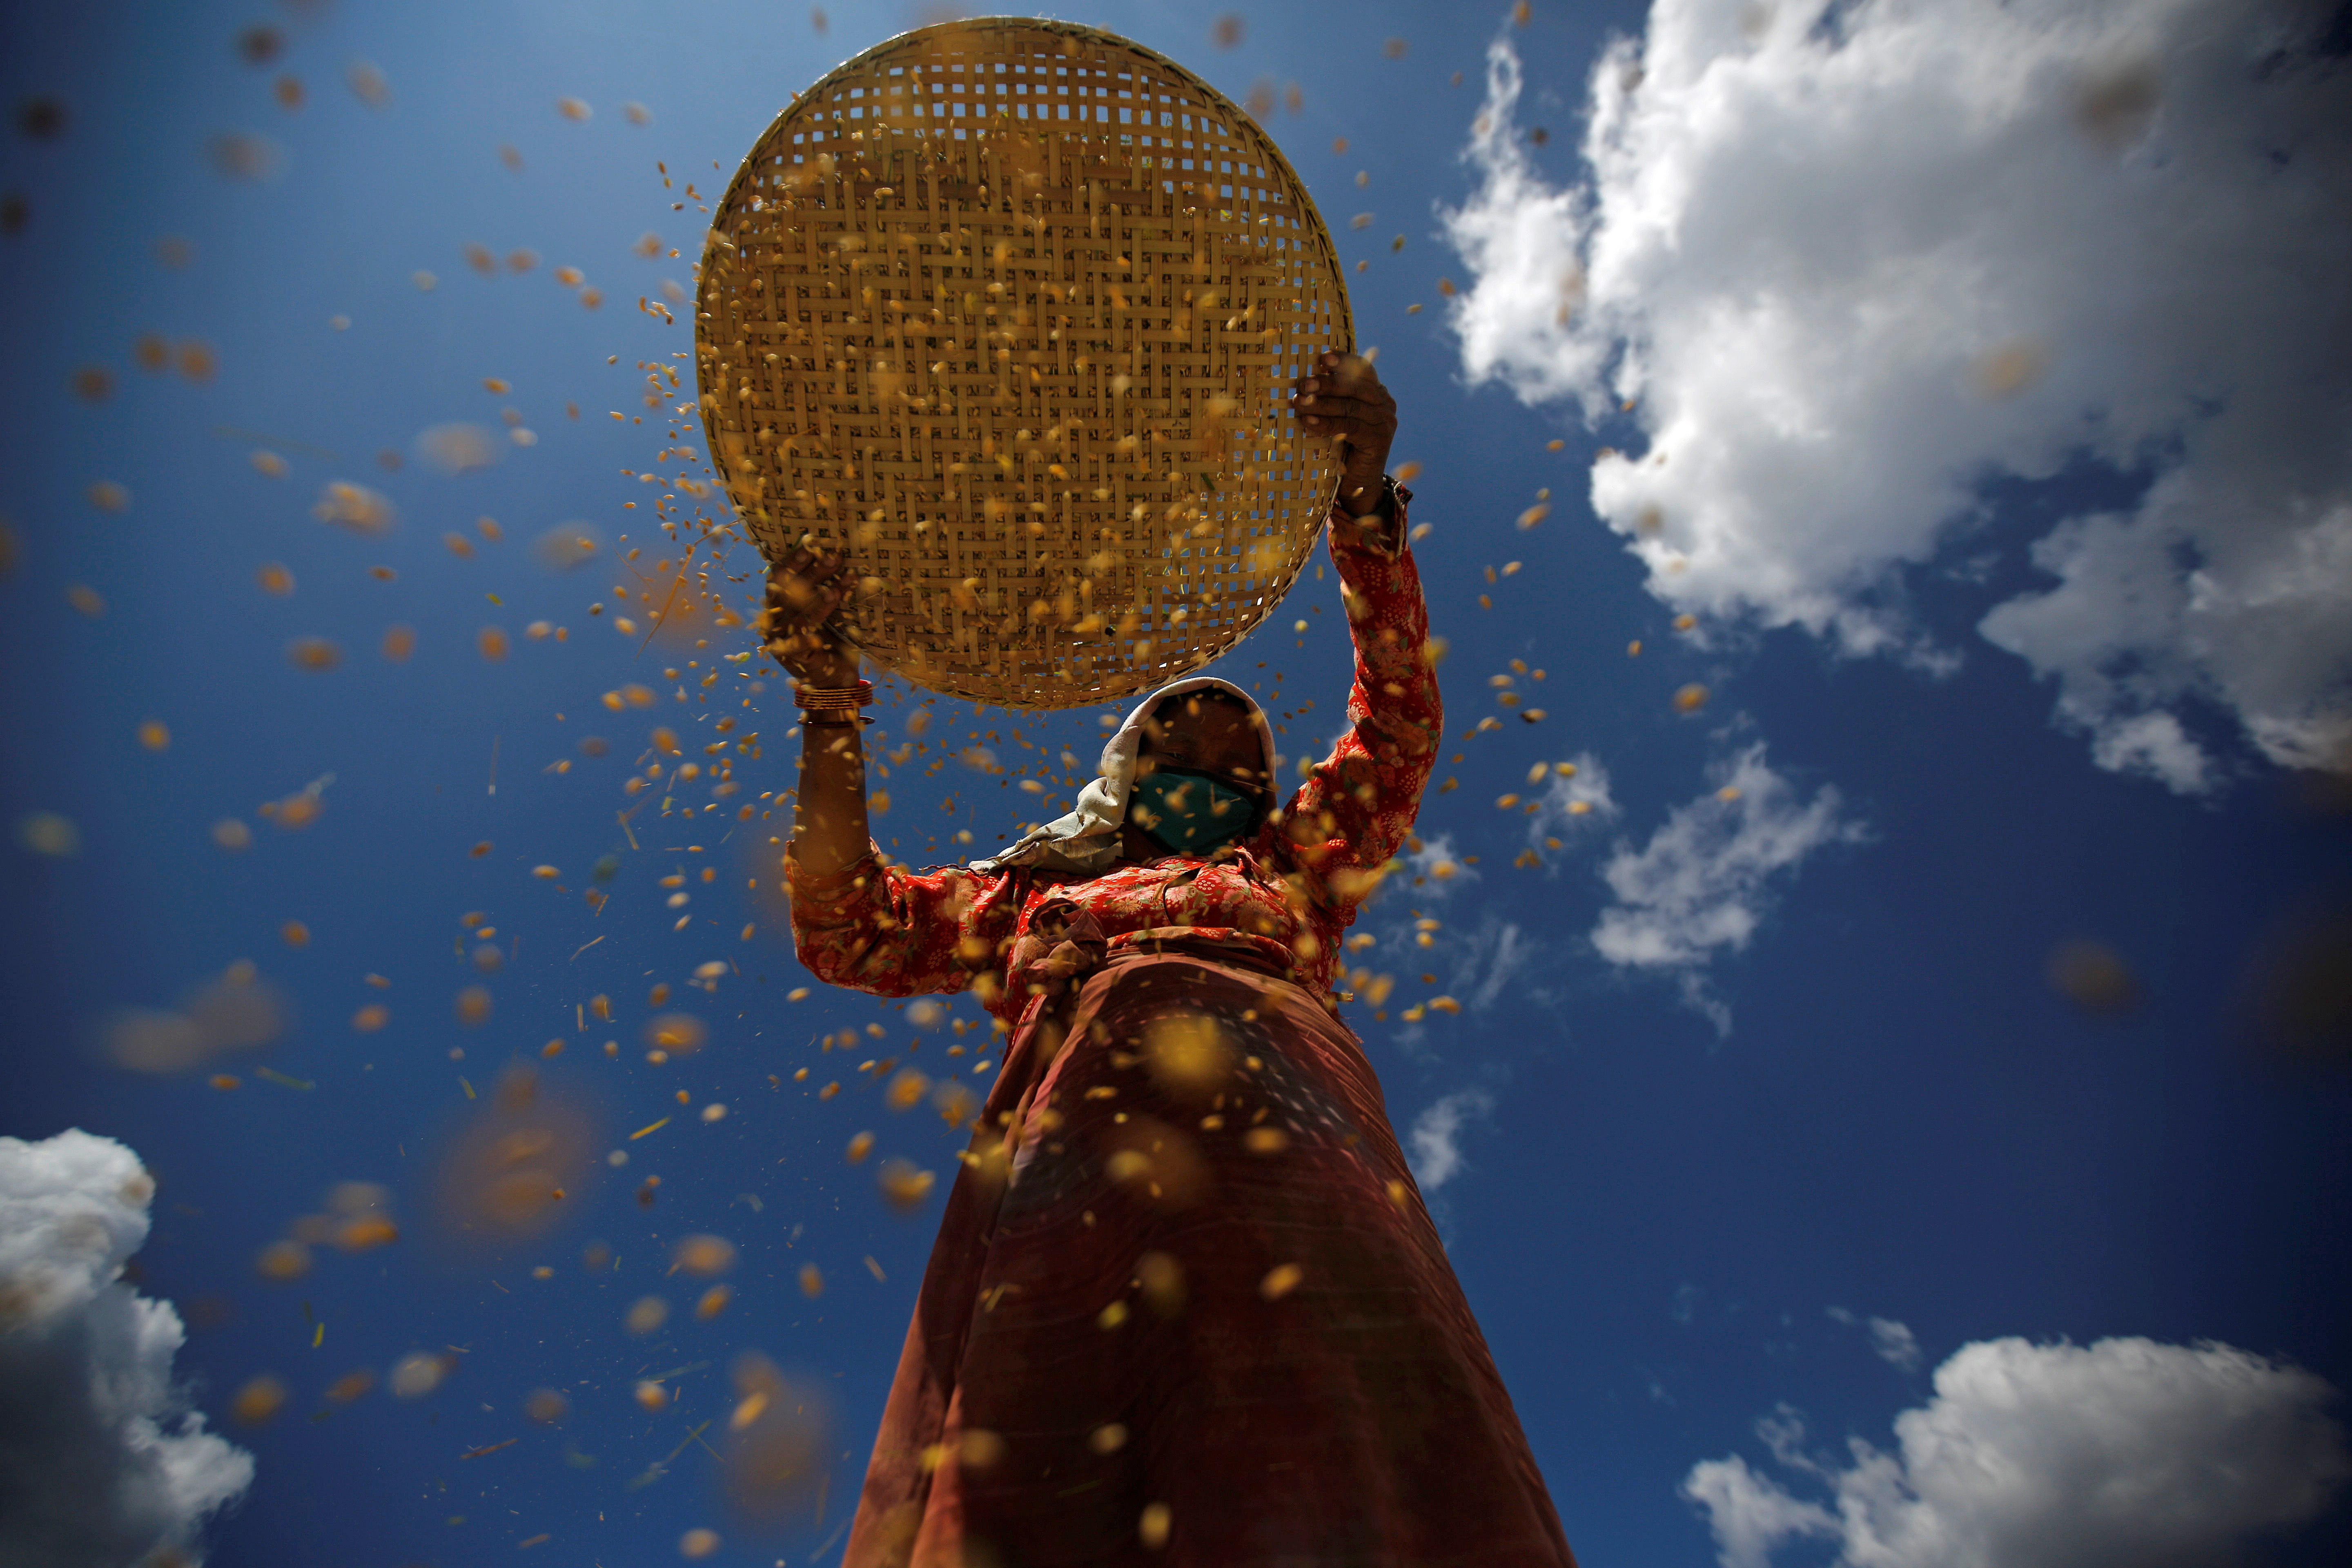 A farmer harvests rice on a field in Lalitpur, Nepal October 26, 2016. REUTERS/Navesh Chitrakar     TPX IMAGES OF THE DAY      - D1BEUJDWLRAA